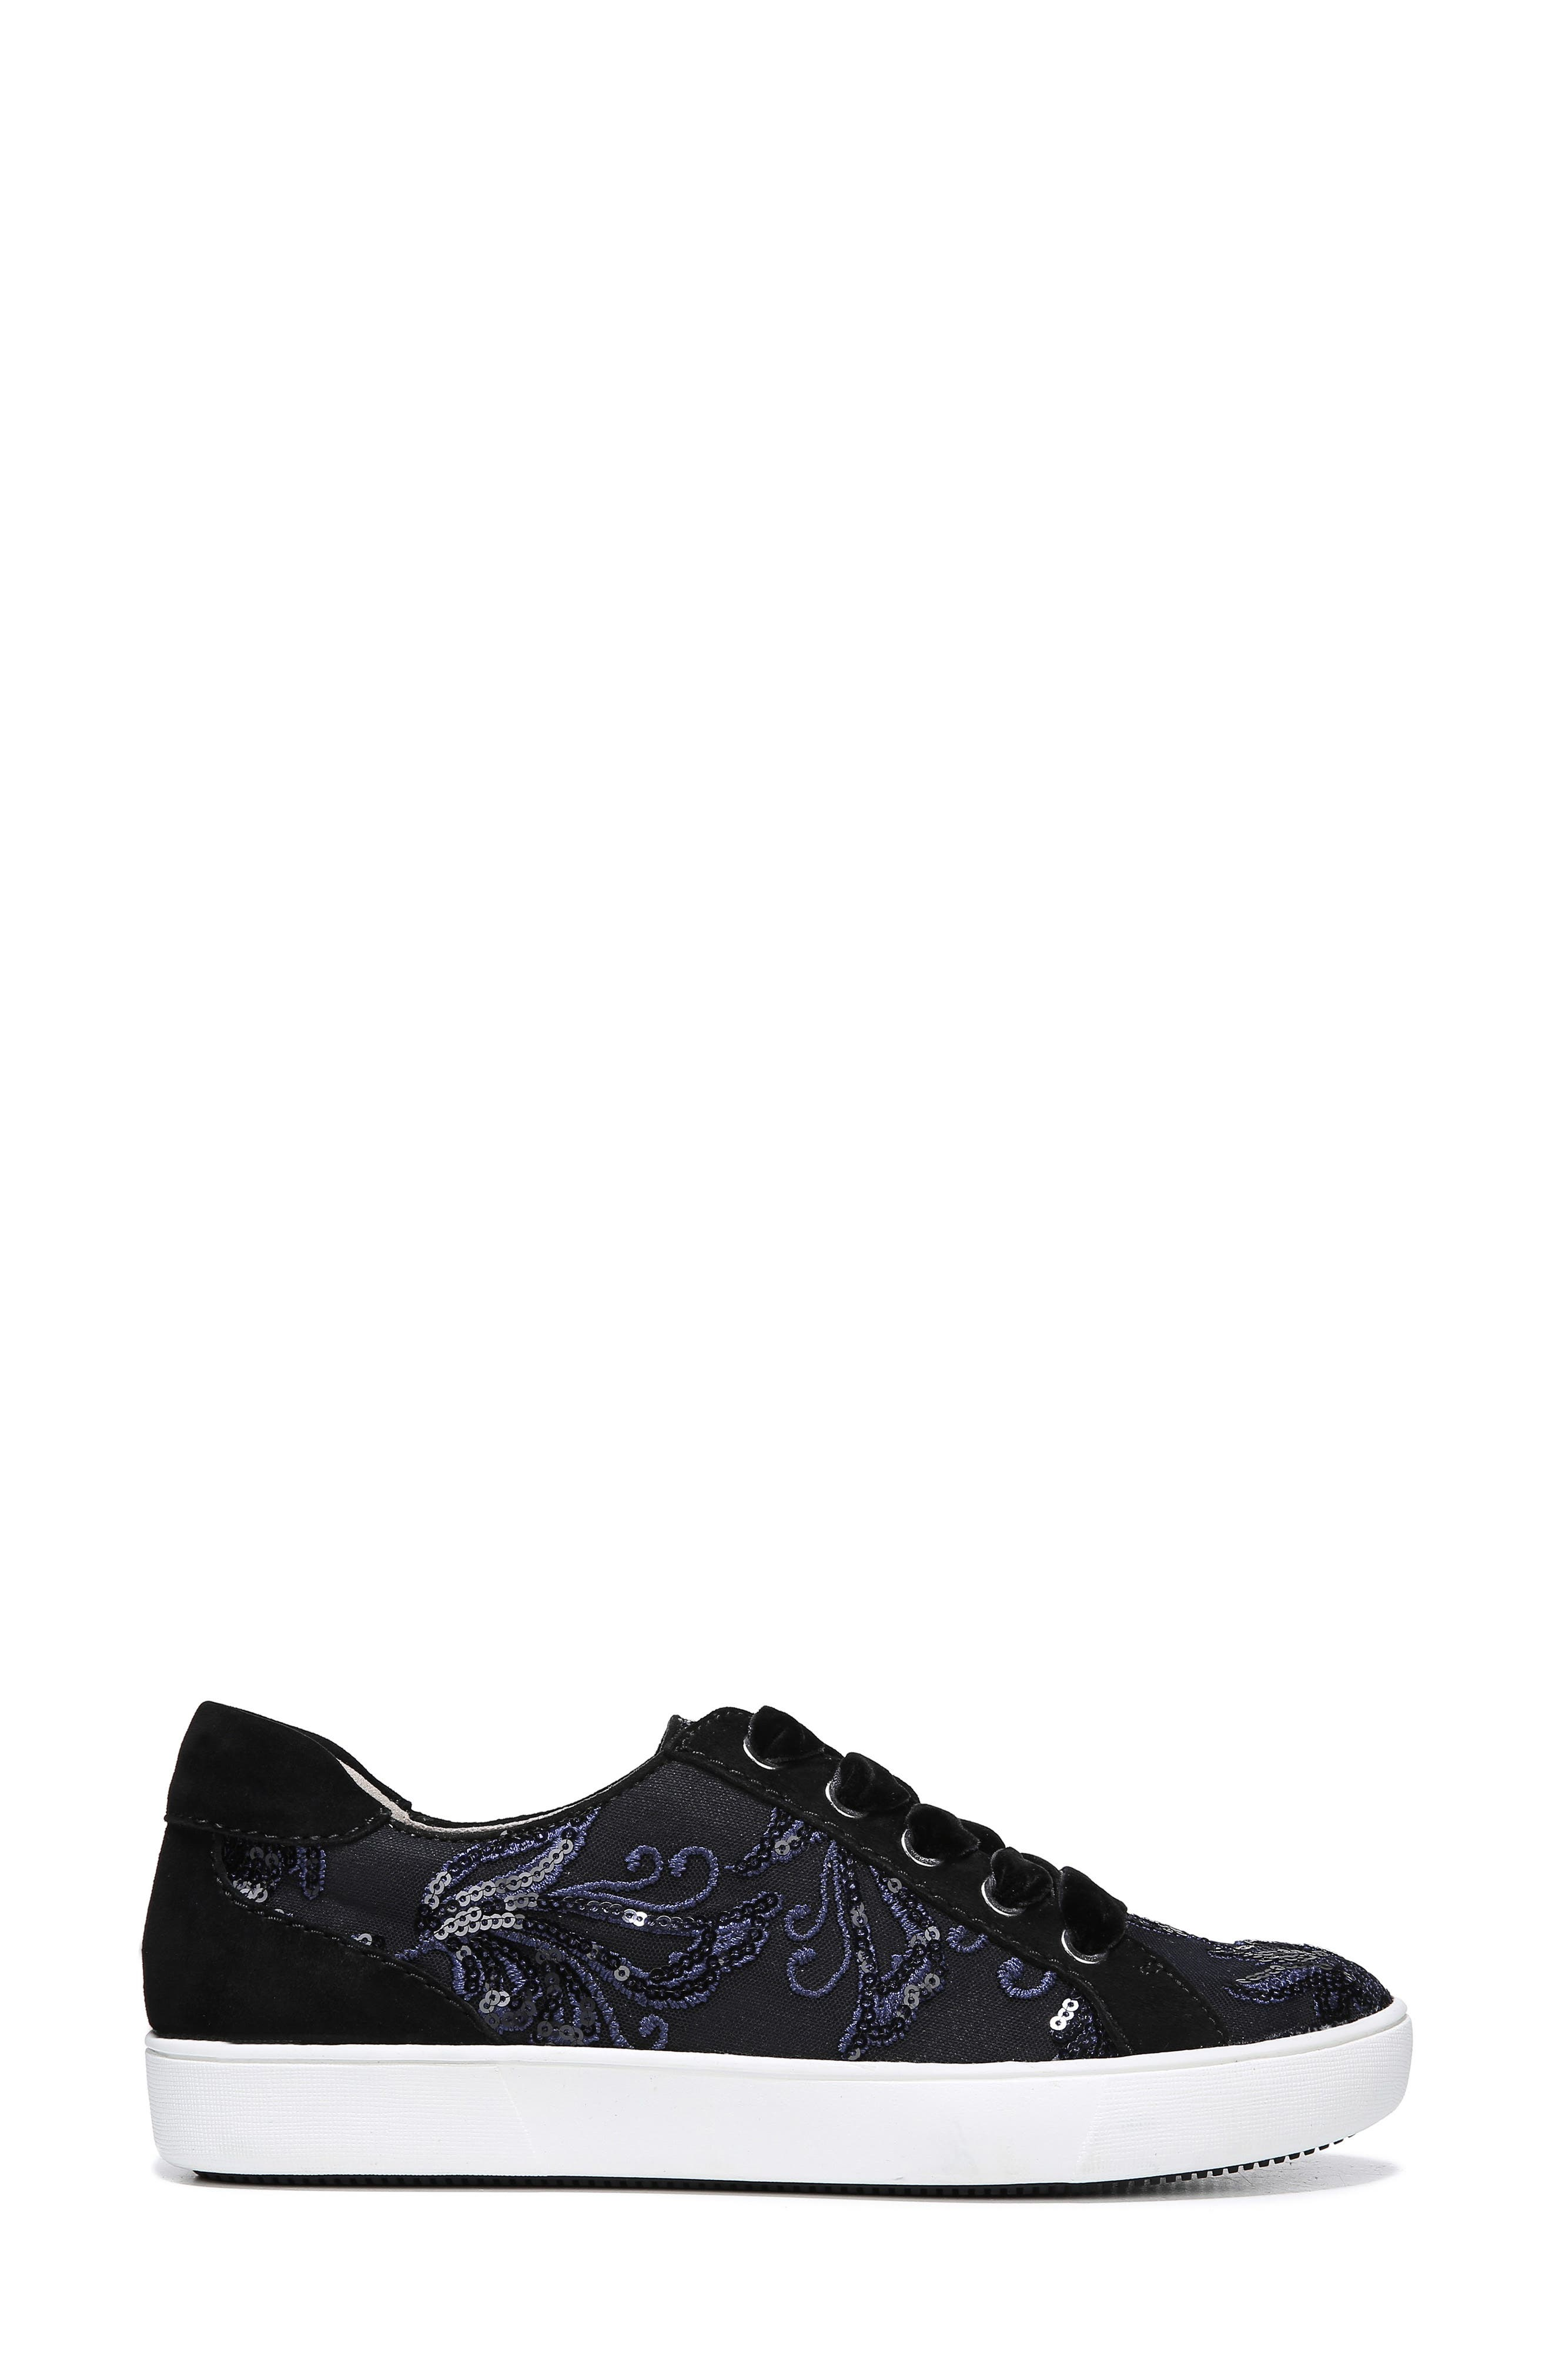 NATURALIZER, Morrison Sneaker, Alternate thumbnail 3, color, NAVY EMBROIDERED LACE